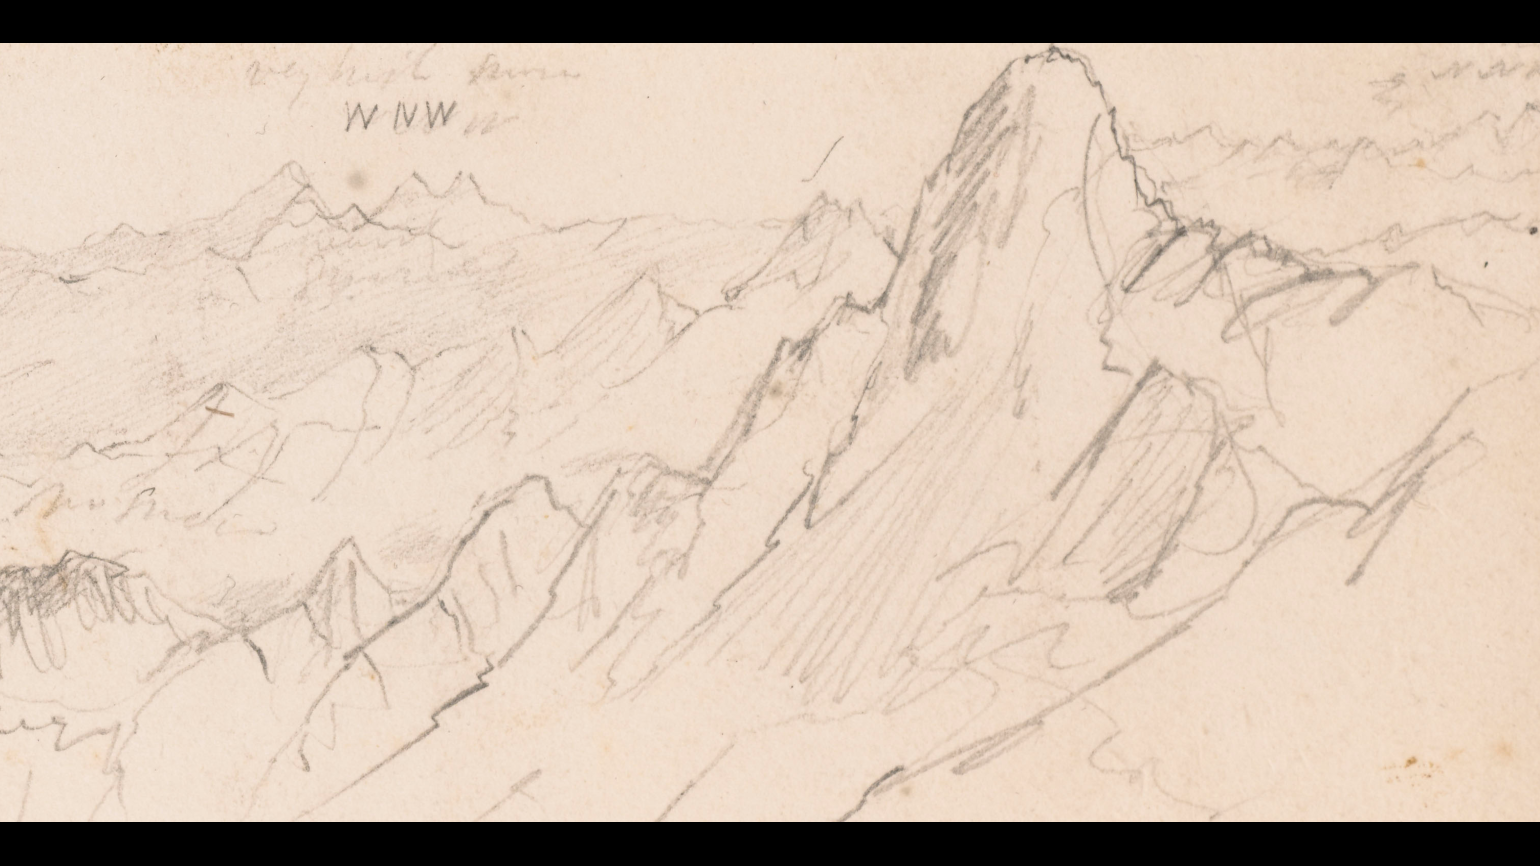 Detail of field sketch of Everest by Joseph Dalton Hooker c. 1848